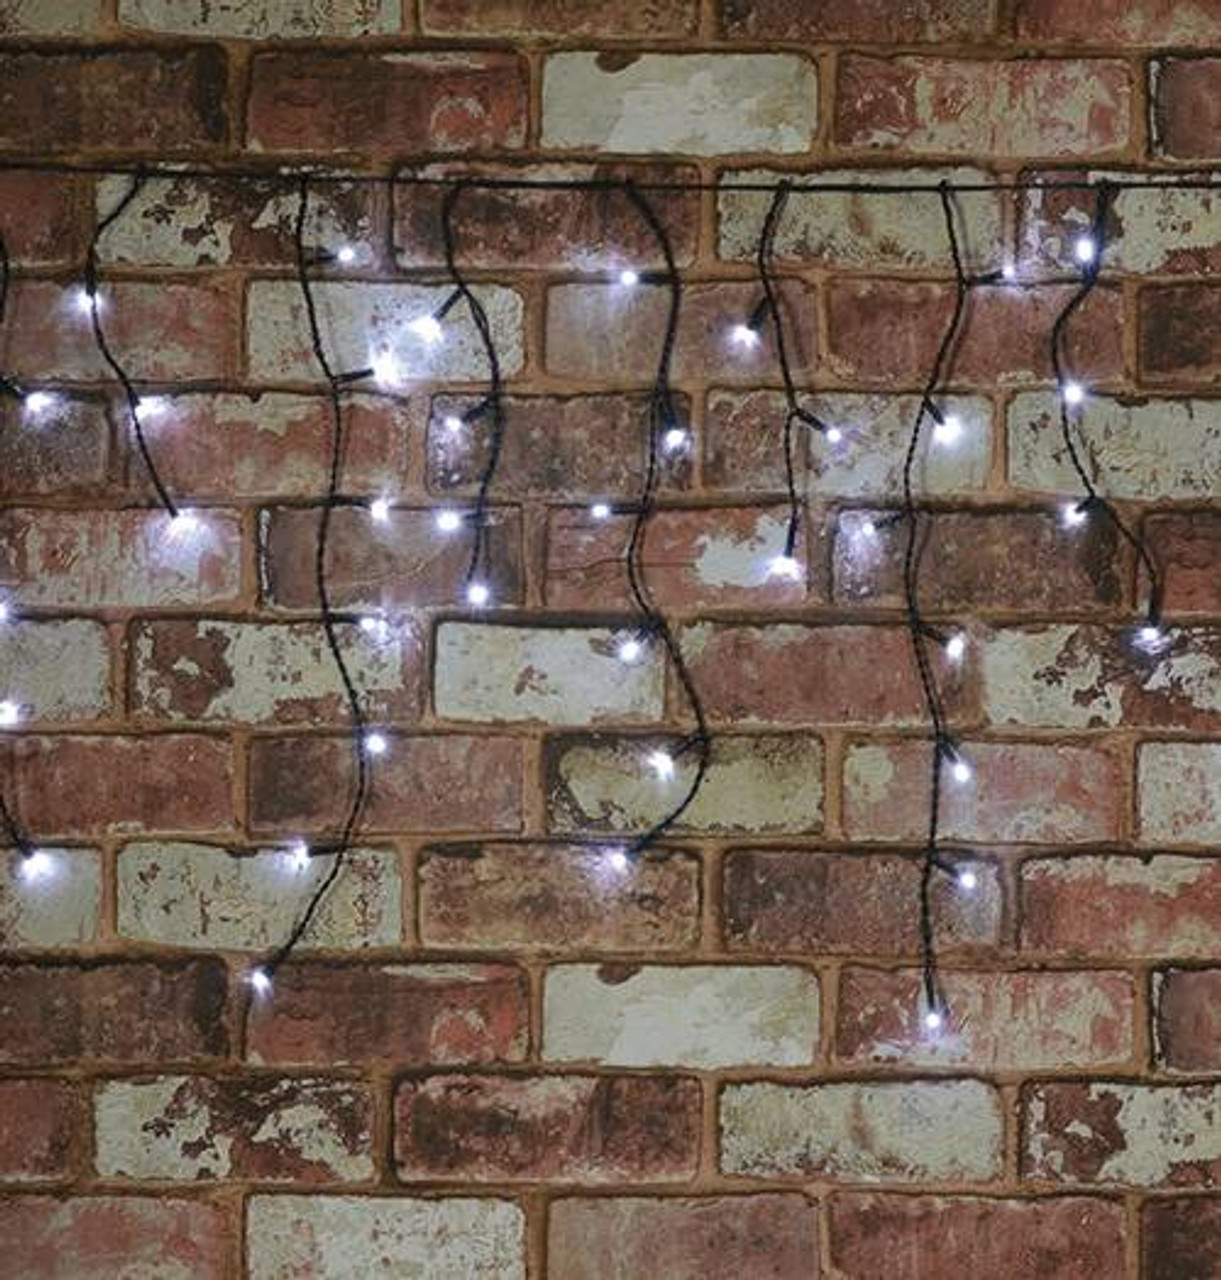 Lyyt 240 Cool White LED Multi-Sequence Auto Timer Icicle String Lights